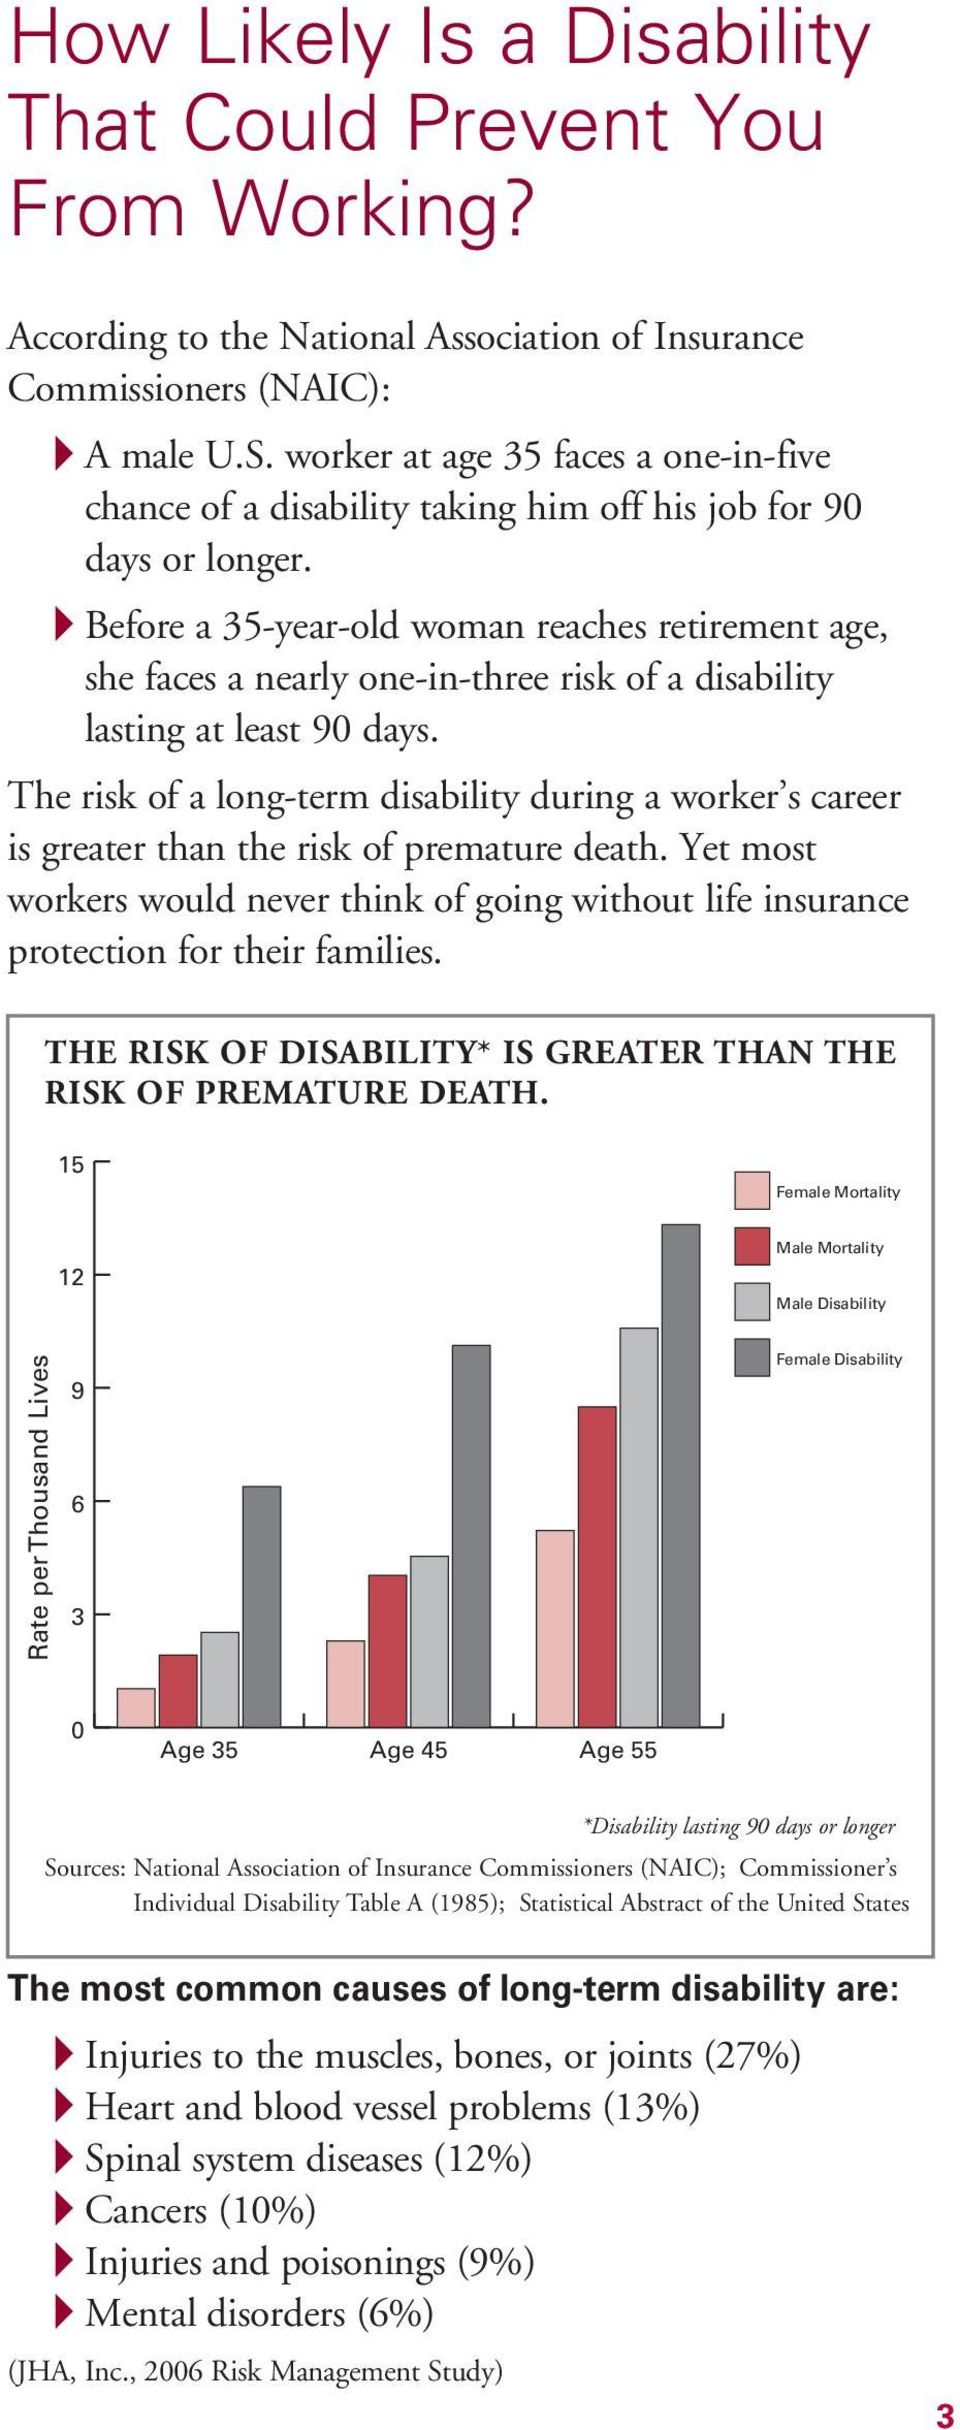 Before a 35-year-old woman reaches retirement age, she faces a nearly one-in-three risk of a disability lasting at least 90 days.